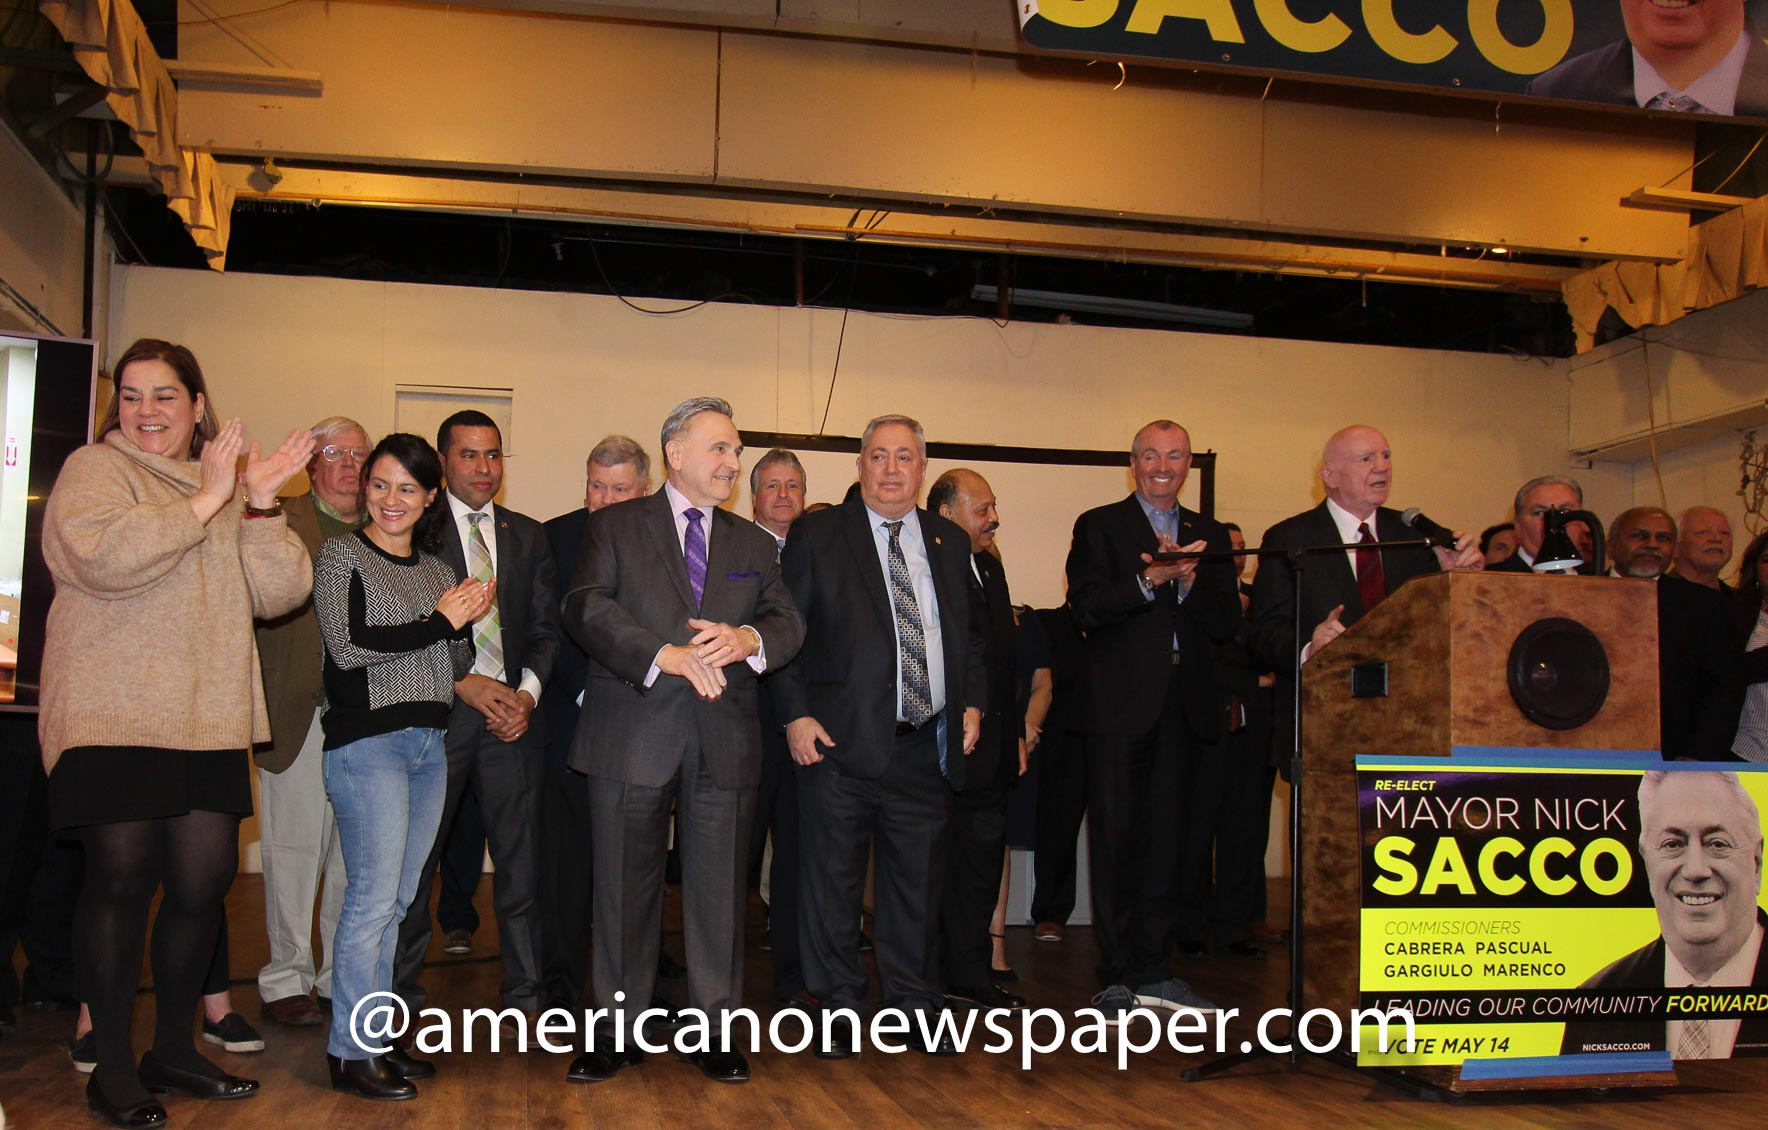 Mayor Nick Sacco Kickoff campaign event at a hall in Union City, New Jersey.